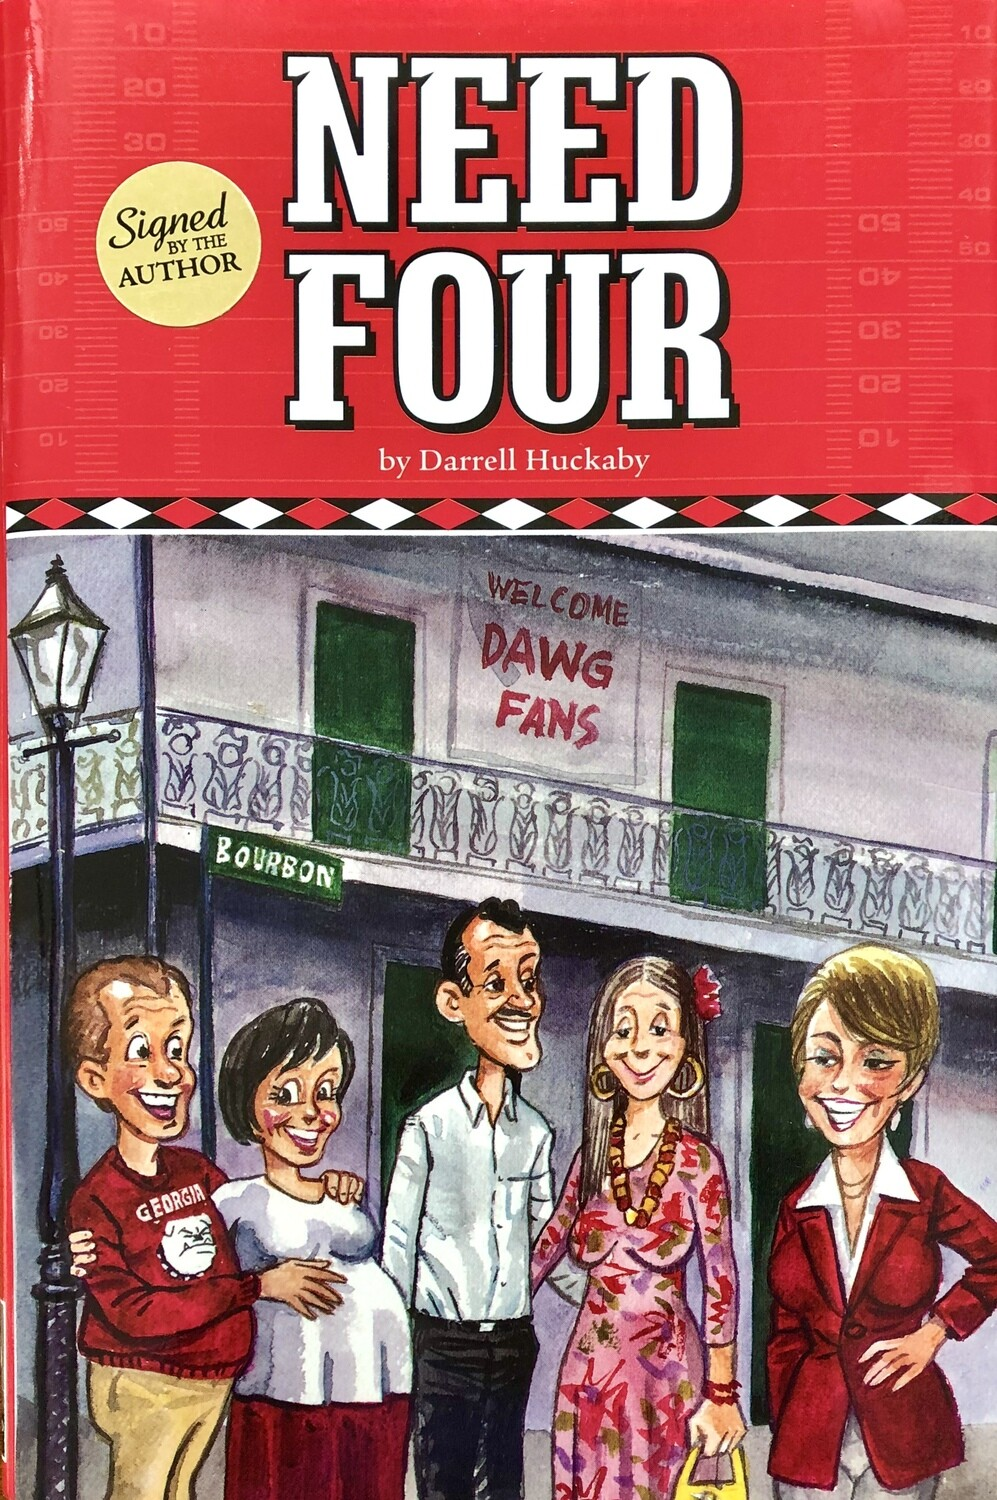 Need Four by Darrell Huckaby - Signed by Author